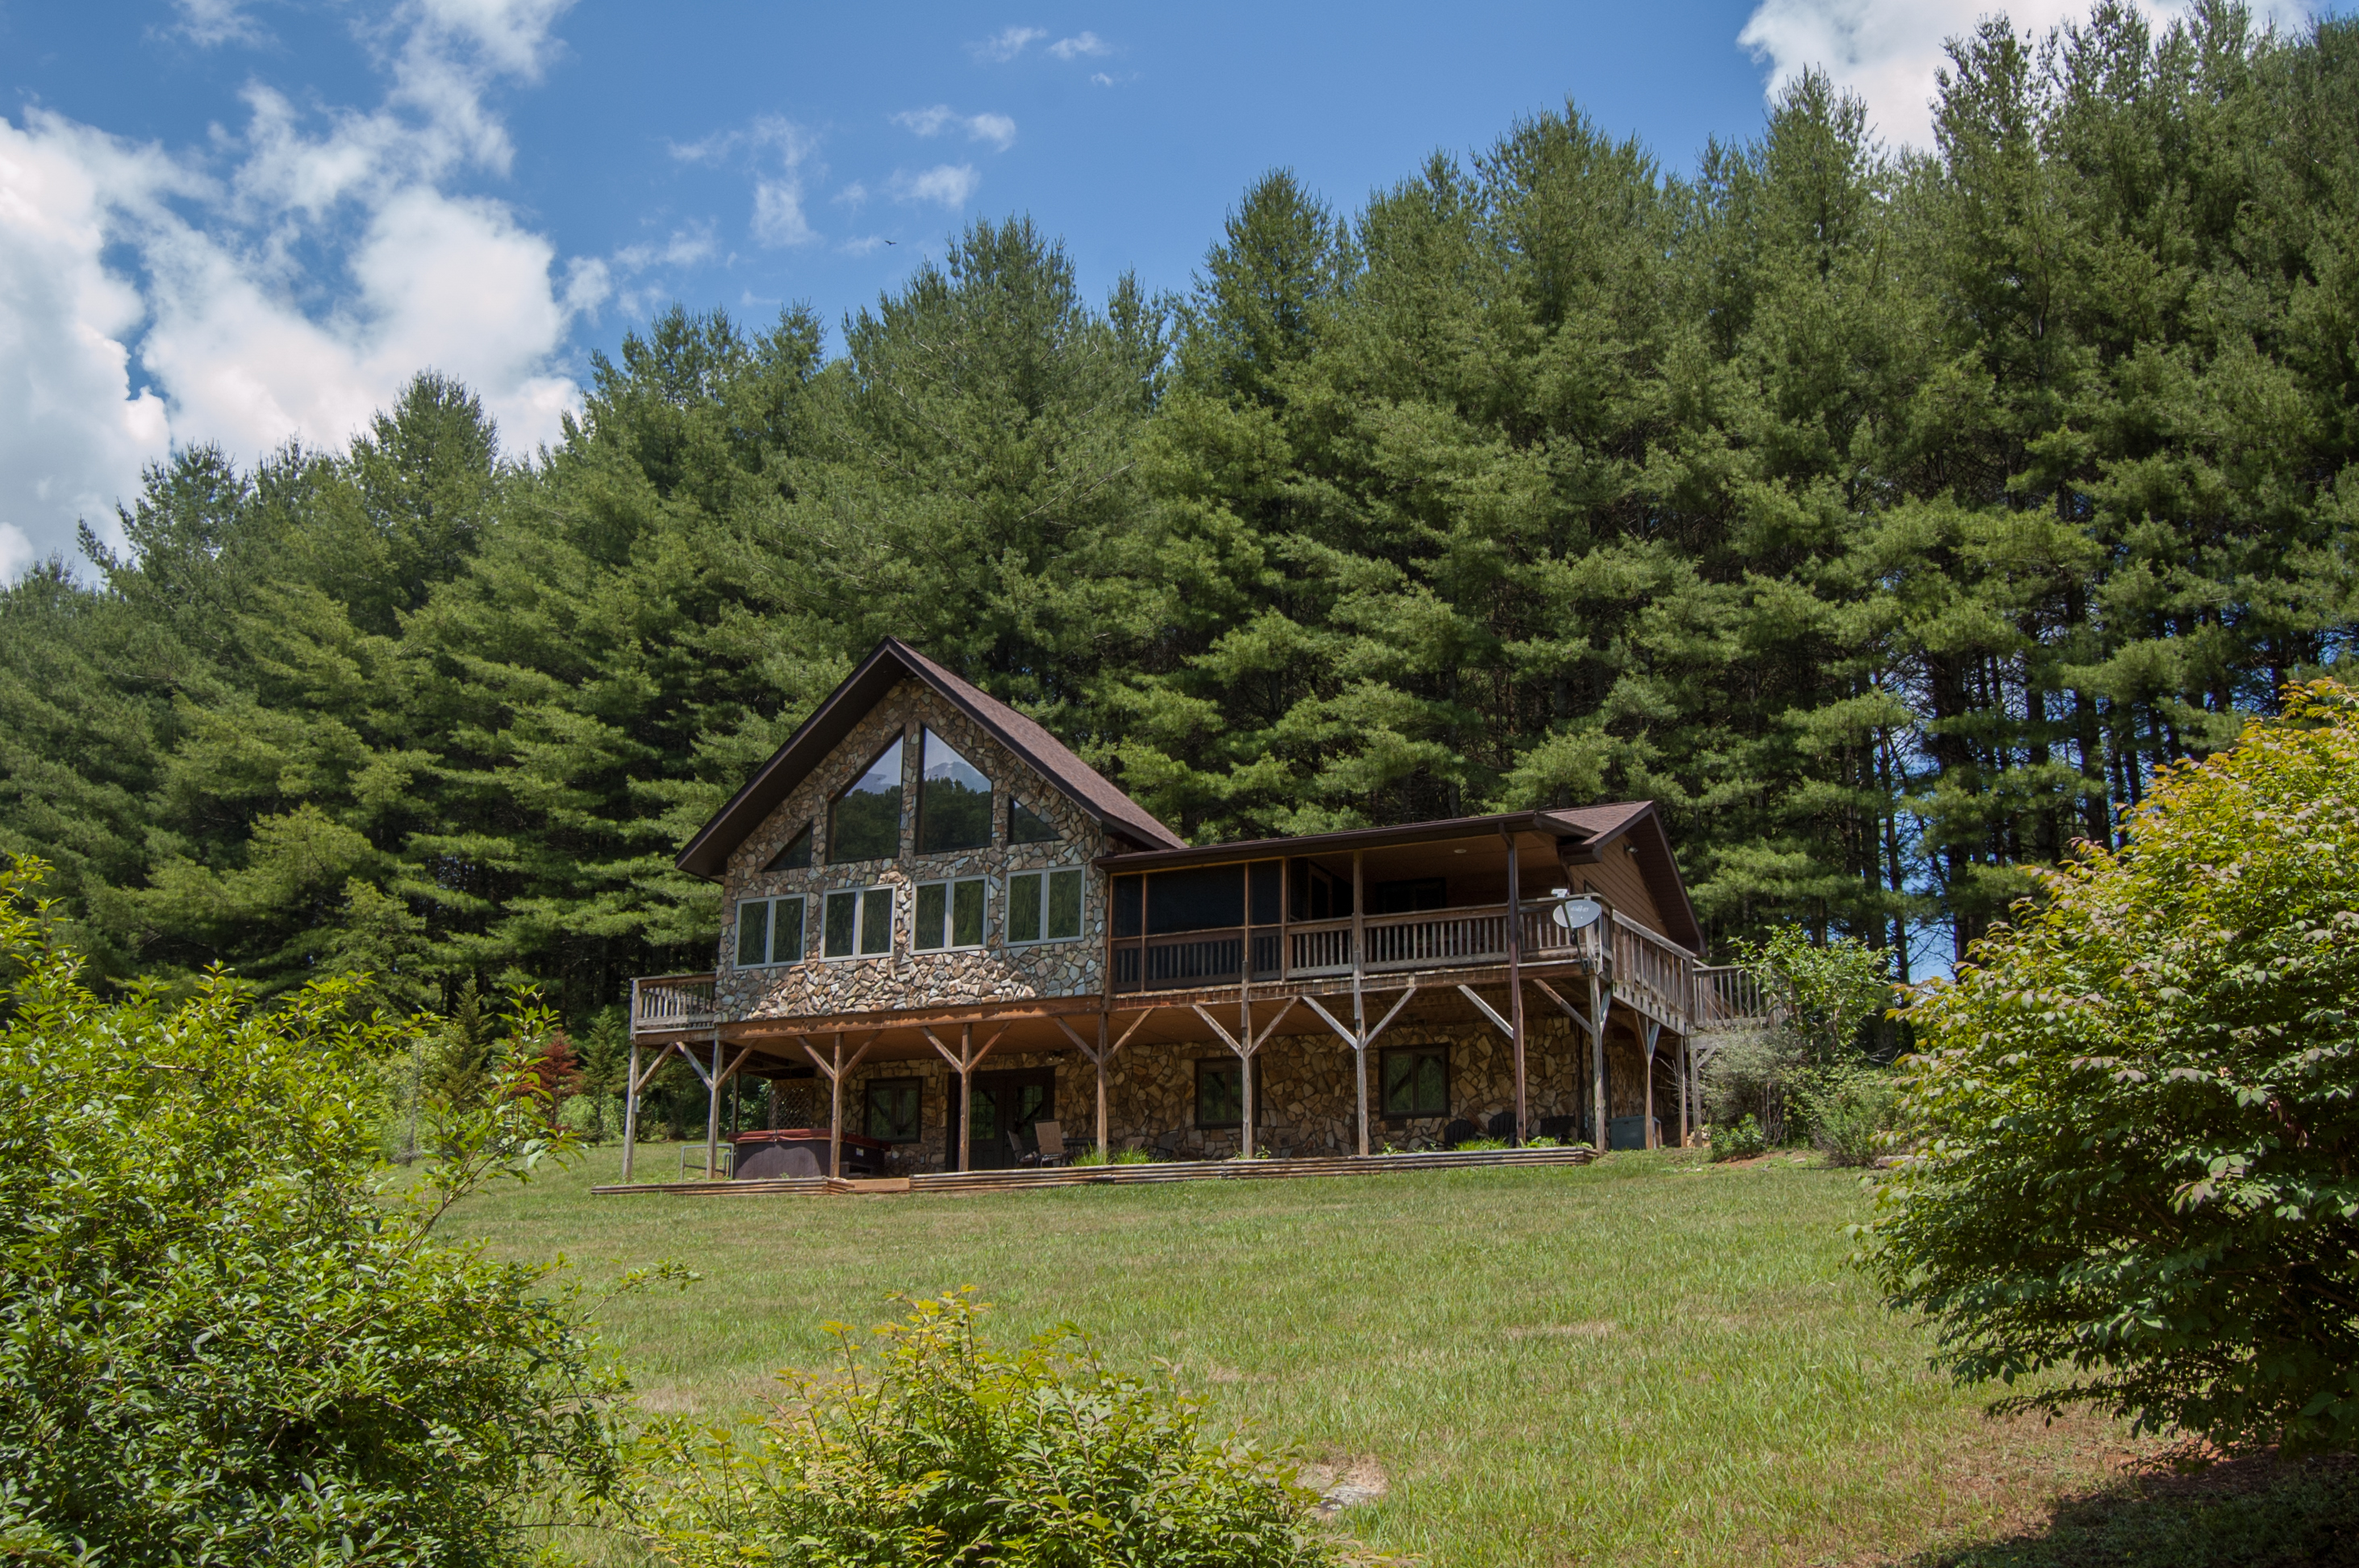 com ridge mountain bacspabath rental black cabin blue cabins asheville luxury parkway talentneeds nc